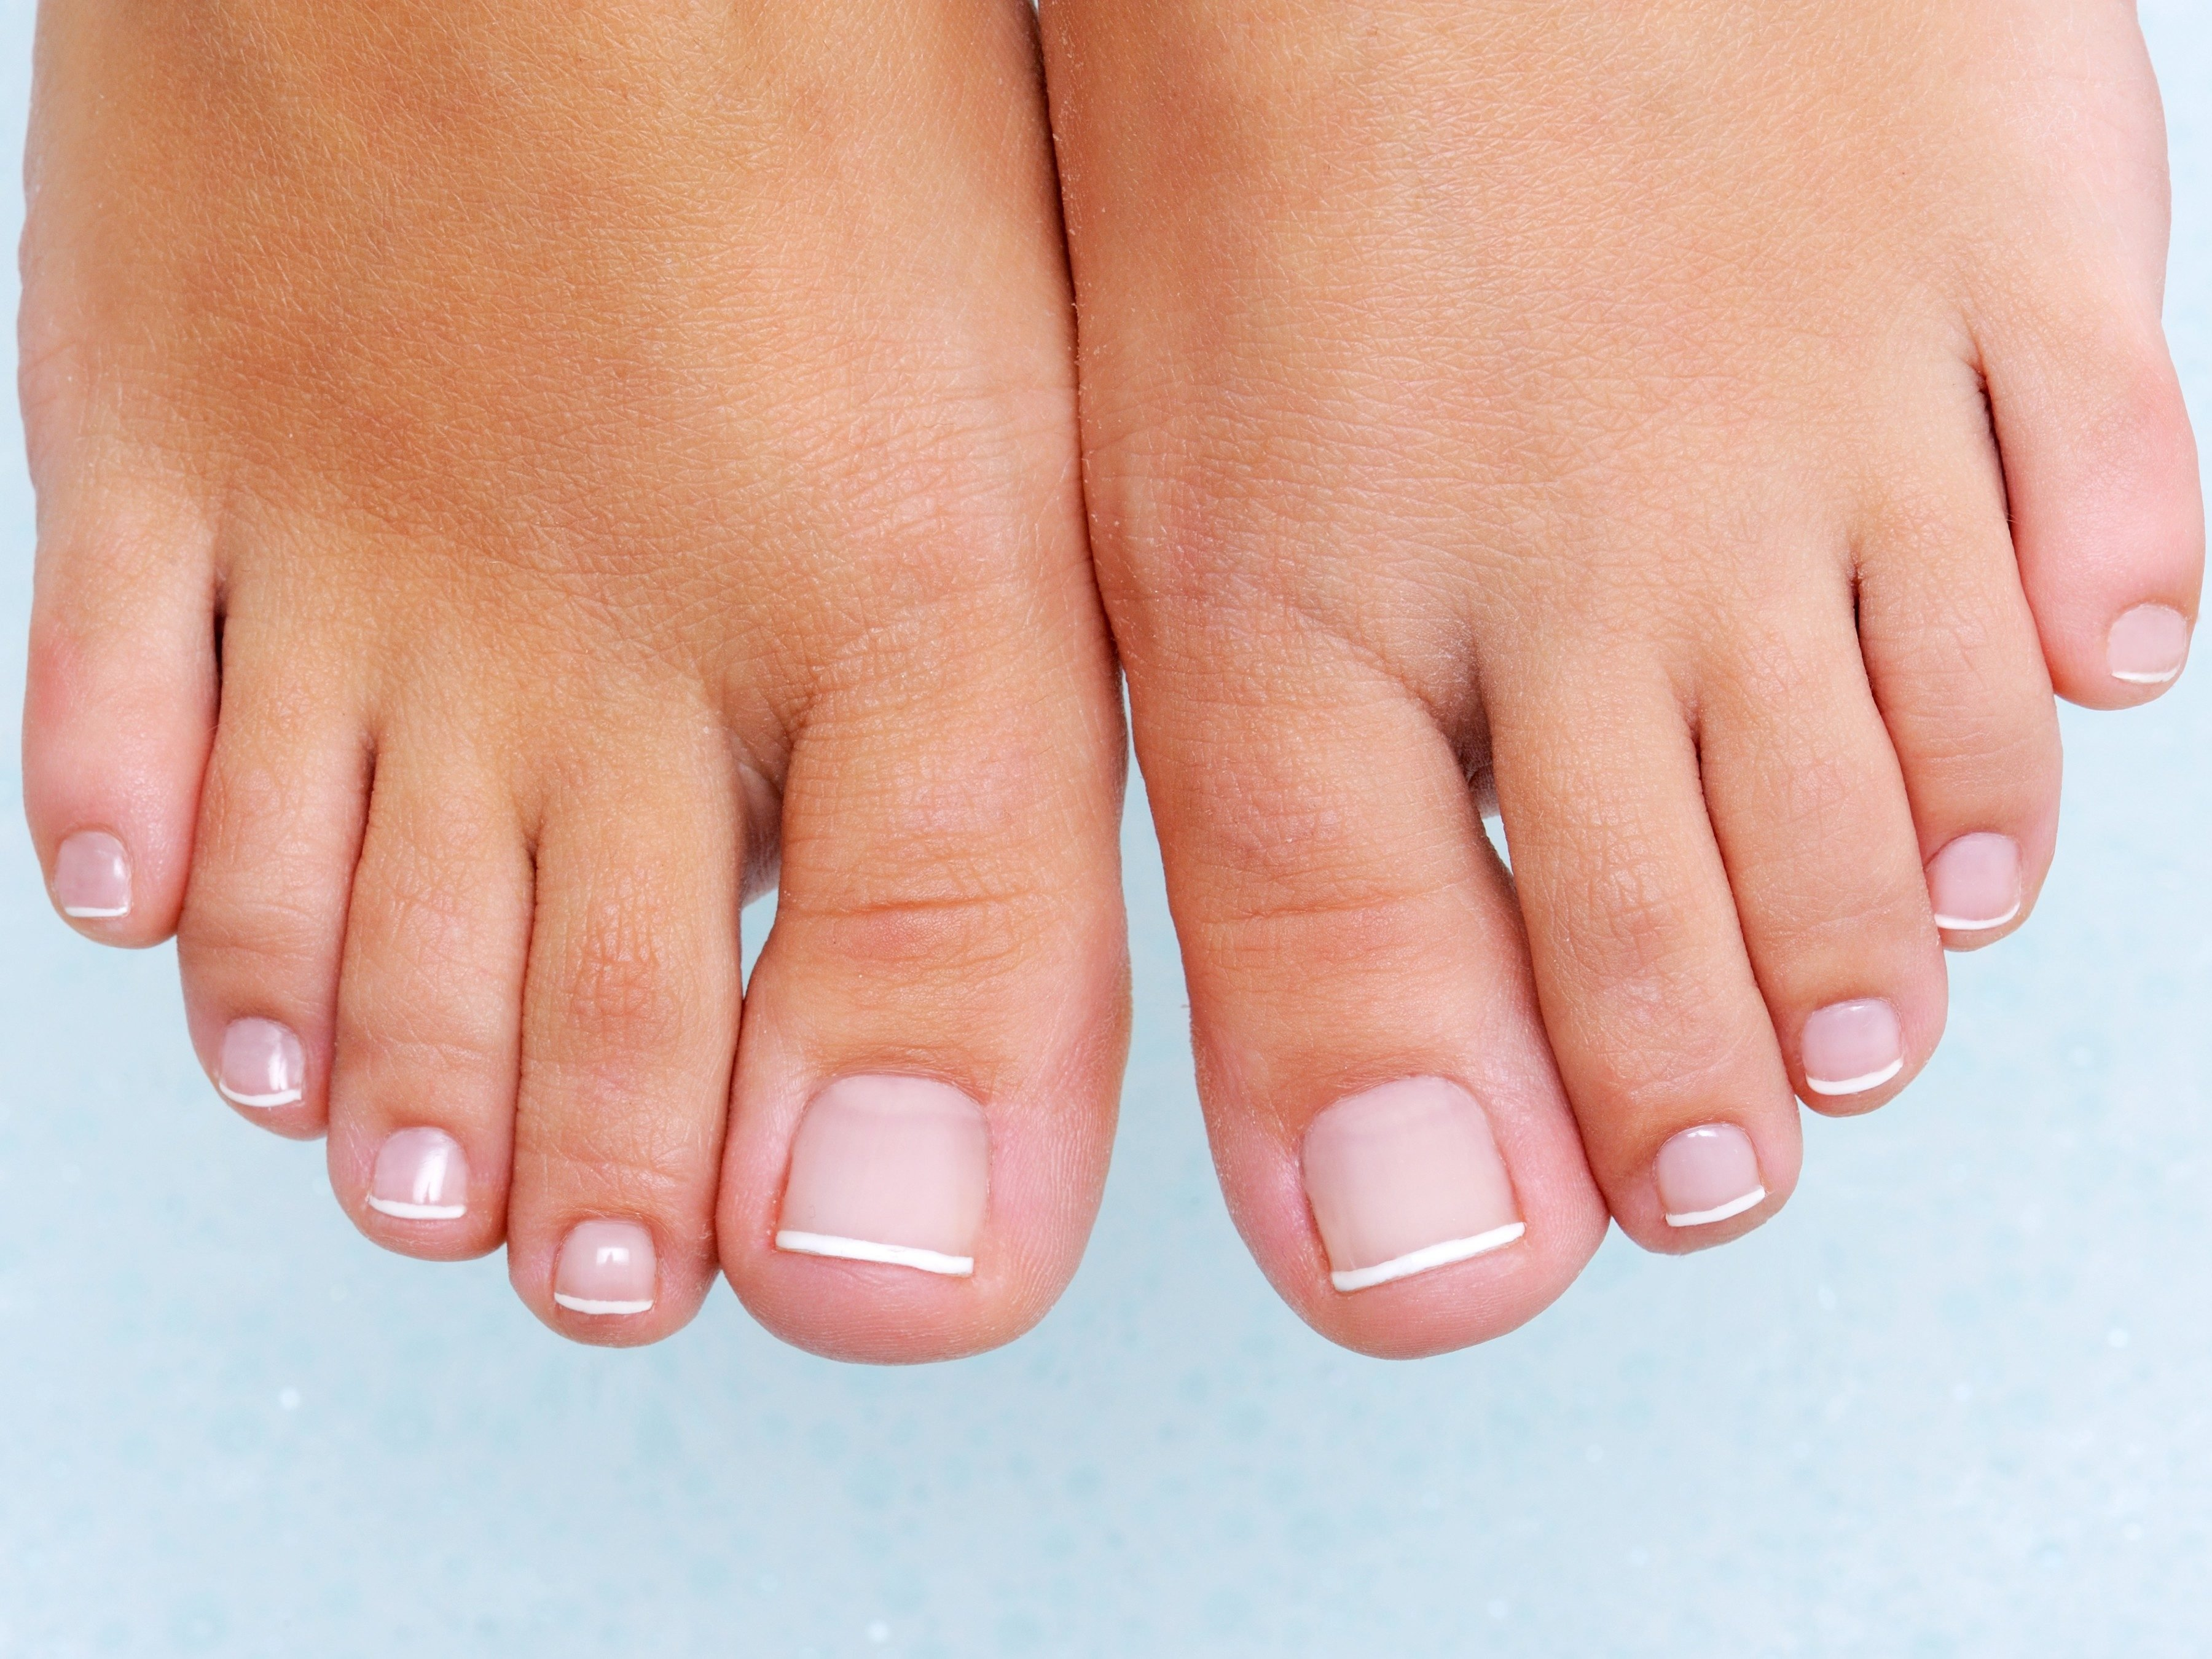 3. Revitalize Your Feet with Shampoo